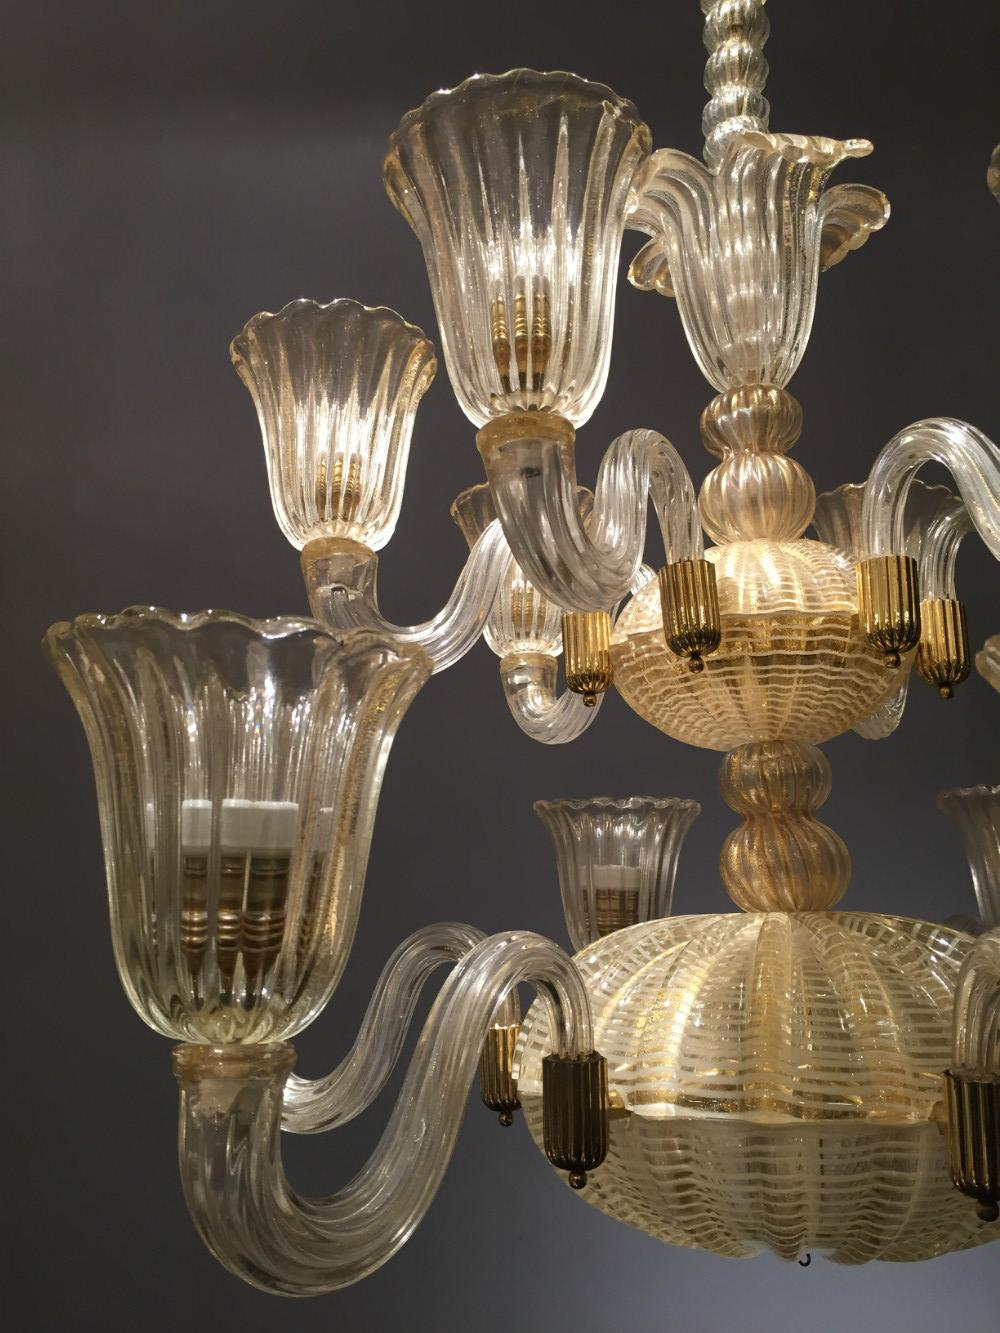 Barovier e Toso Glass Chandelier - Lighting - Stock - Thomas Bonzom